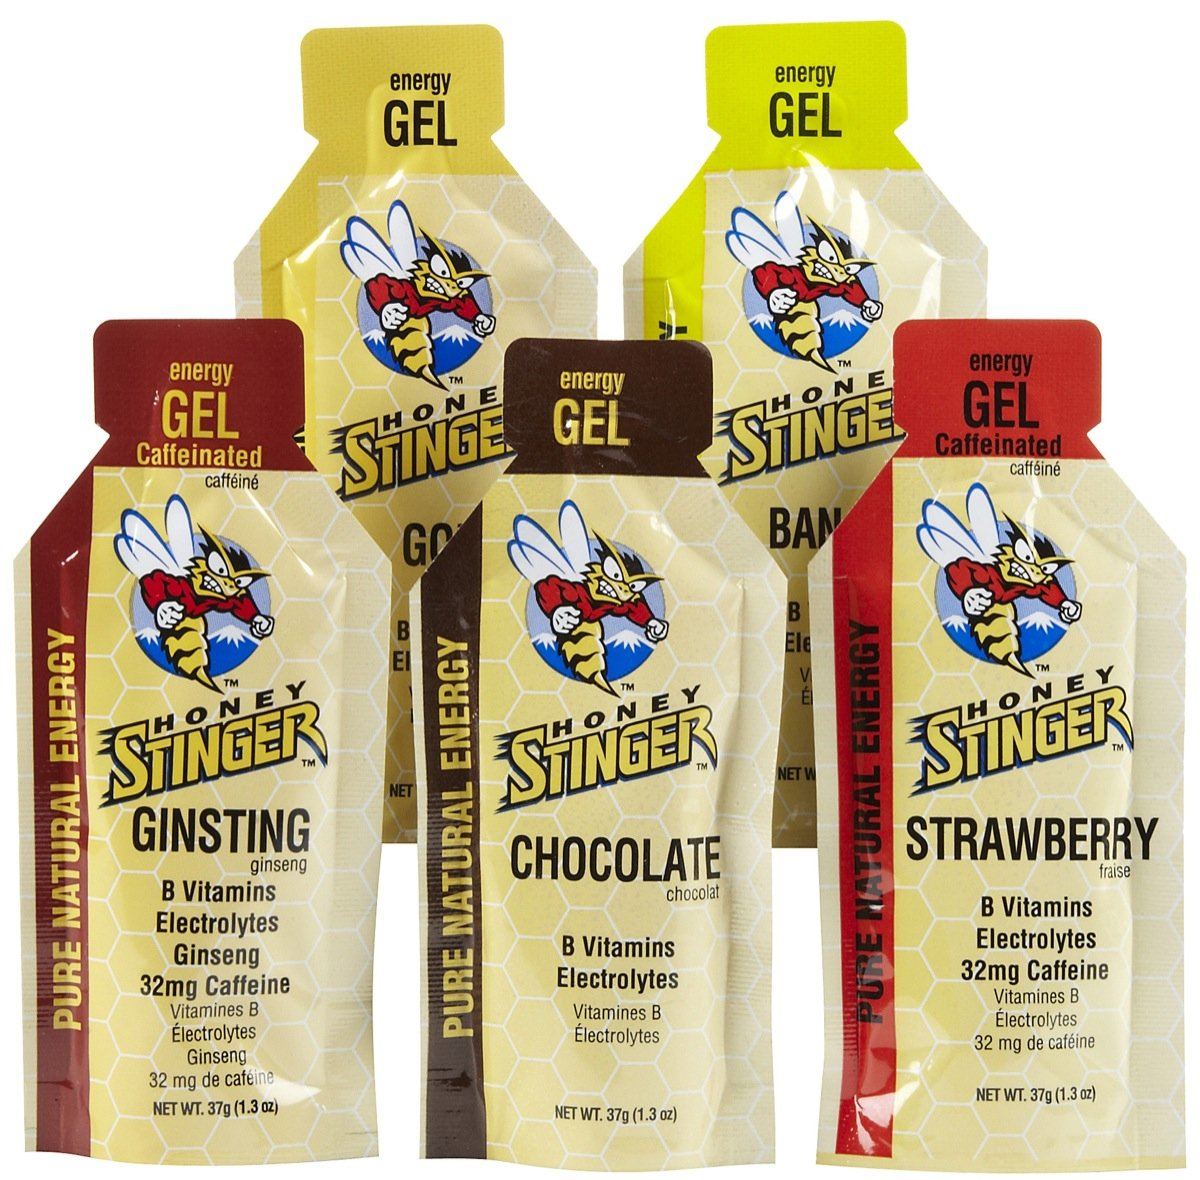 Honey Stinger Gel chocolate and ginsting review